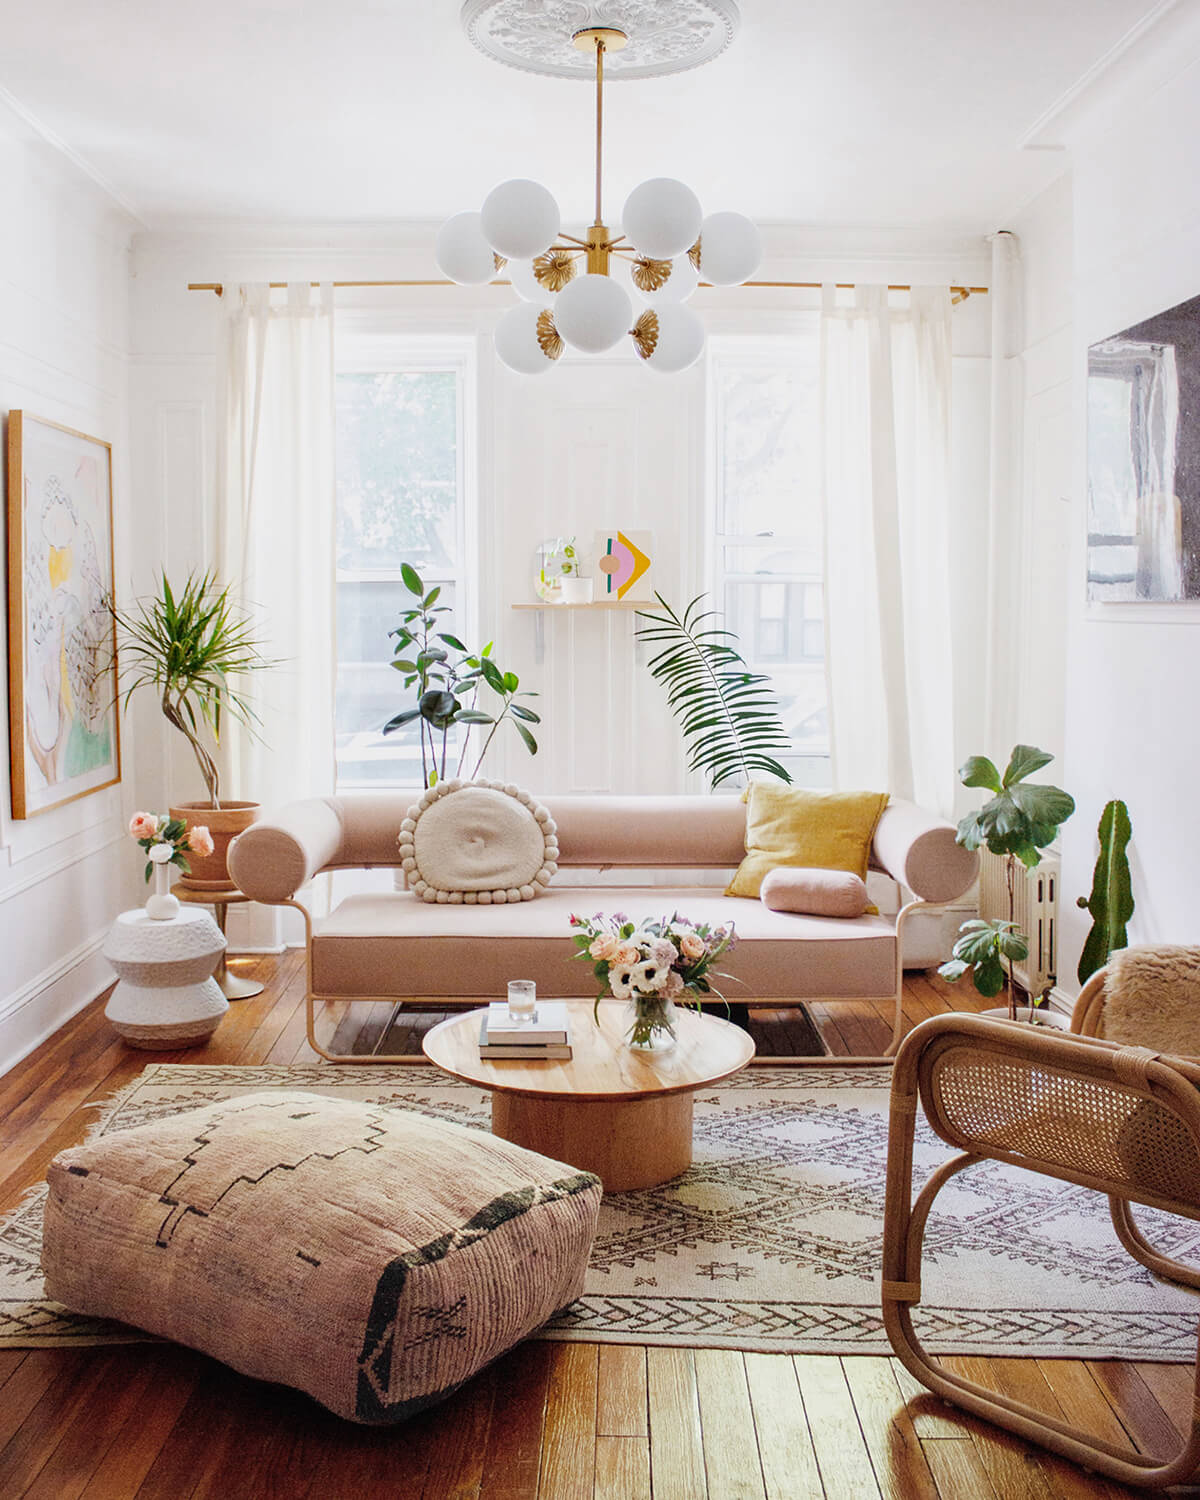 20 Best Small Apartment Living Room Decor and Design Ideas for 2021